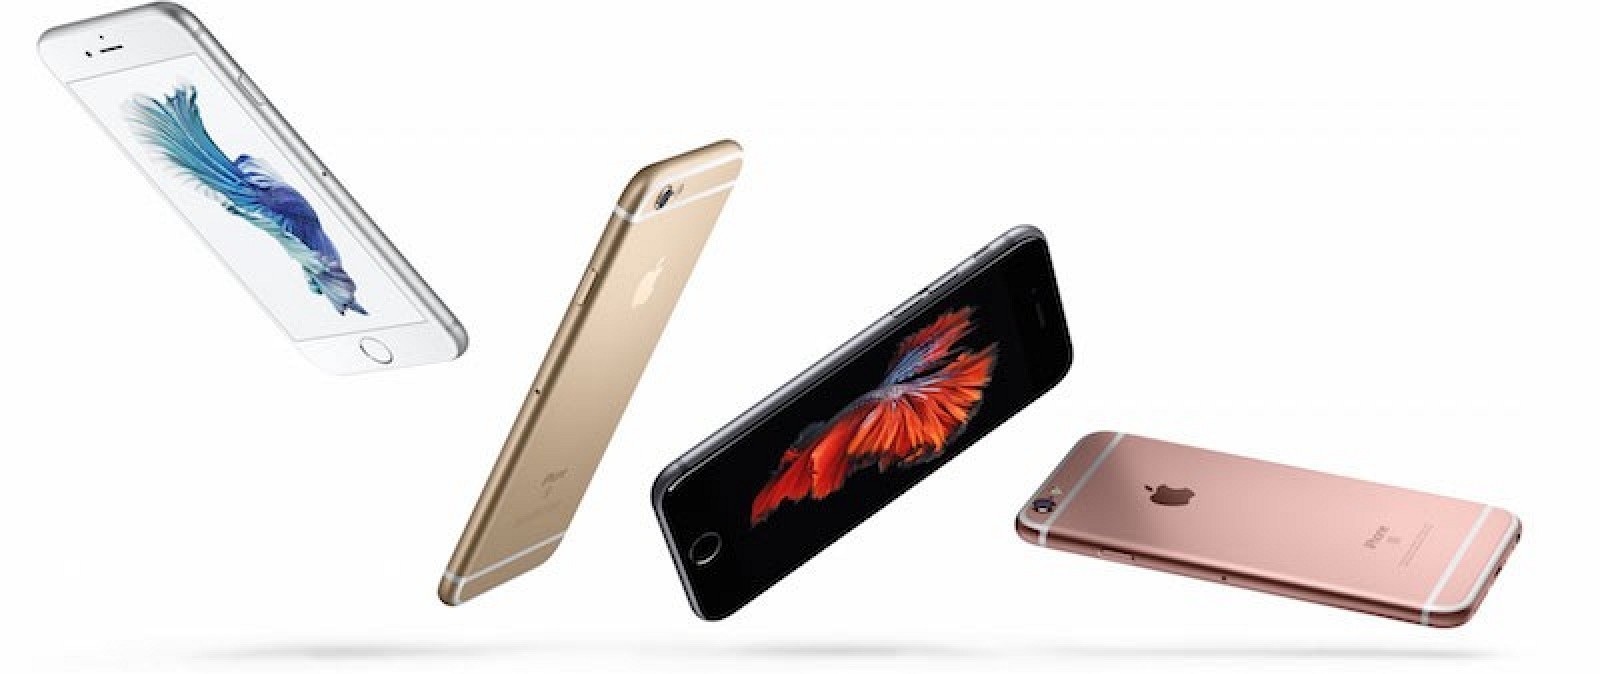 Just Few Hours After The Launch Of Iphone 6s And Iphone 6s Plus First Unboxing Impressions And Test Processes Begin Appearing On The Web